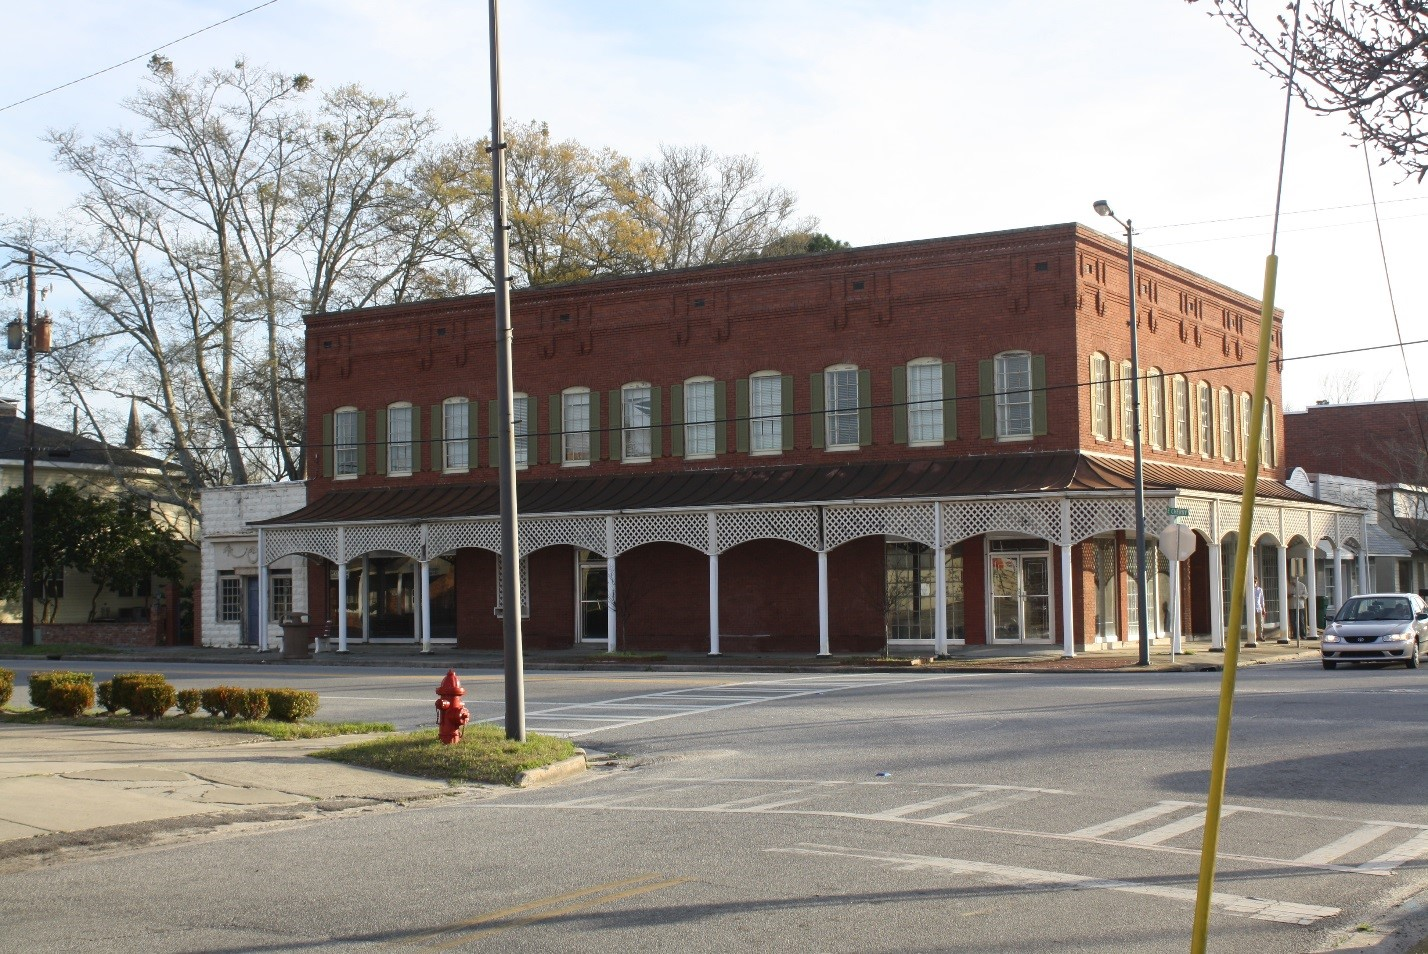 The Kicklighter Building was a commercial building constructed in the early 1890s.